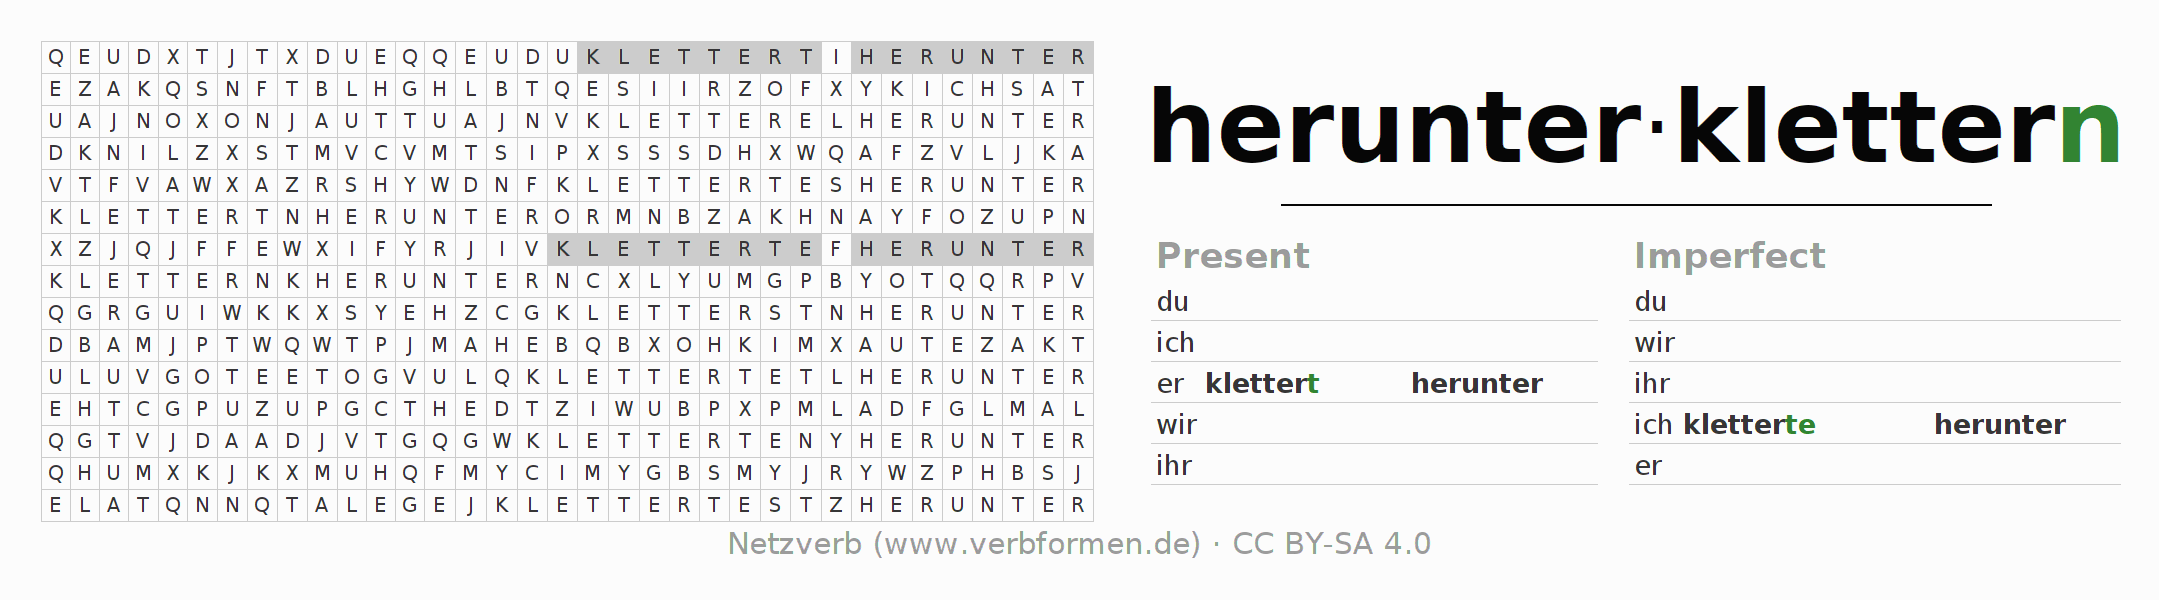 Word search puzzle for the conjugation of the verb herunterklettern